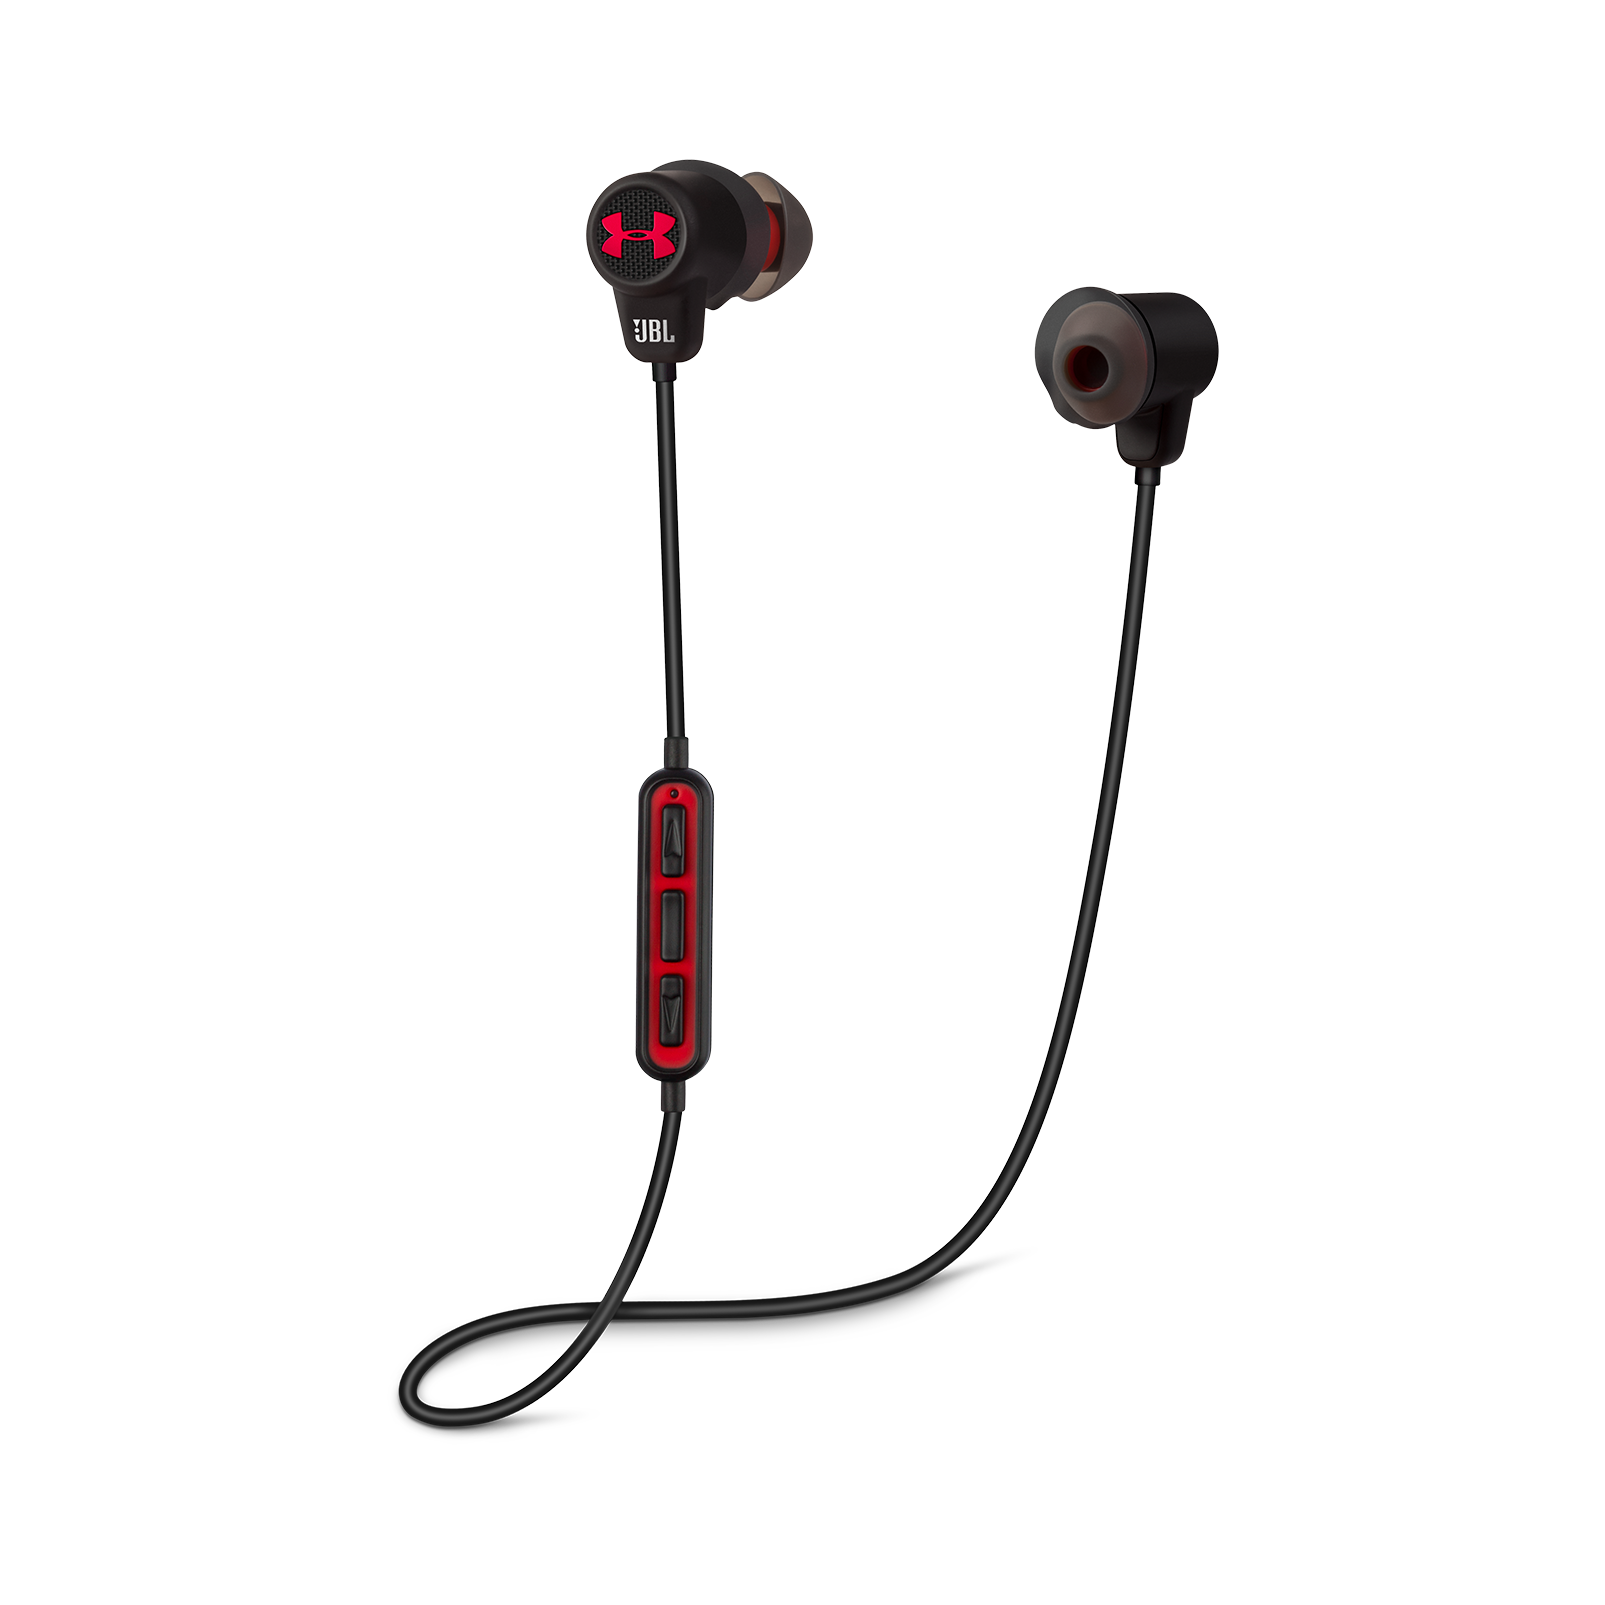 Under Armour Sport Wireless - Black - Wireless in-ear headphones for athletes - Detailshot 1